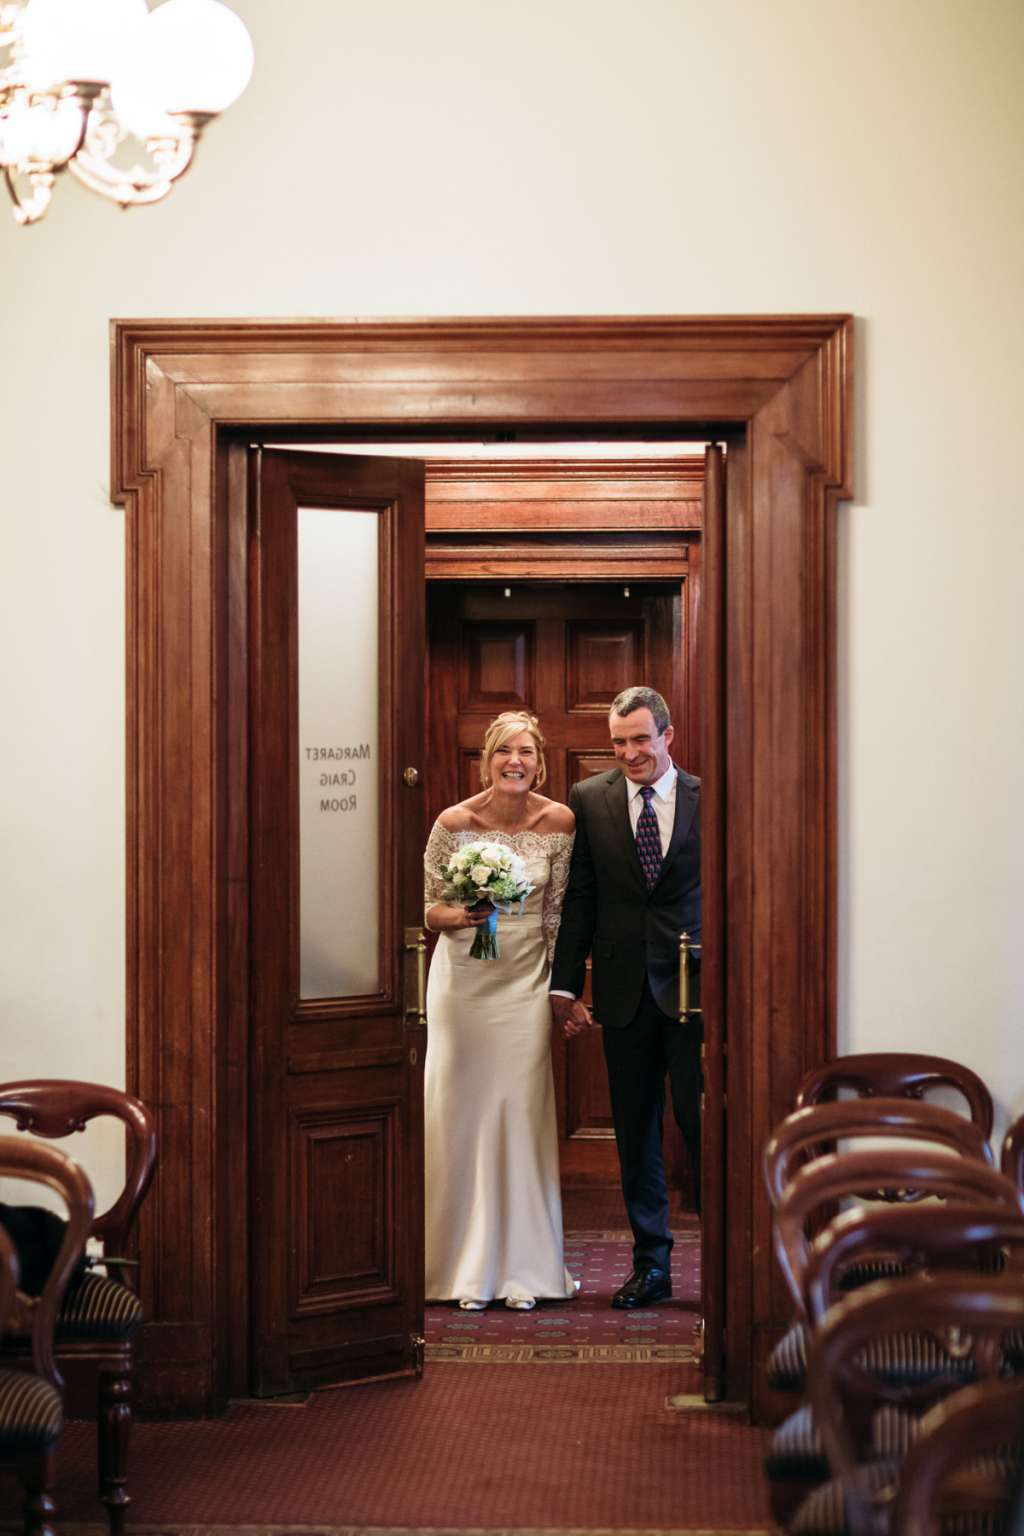 Wedding Photography Melbourne - Sharon & Peter 102